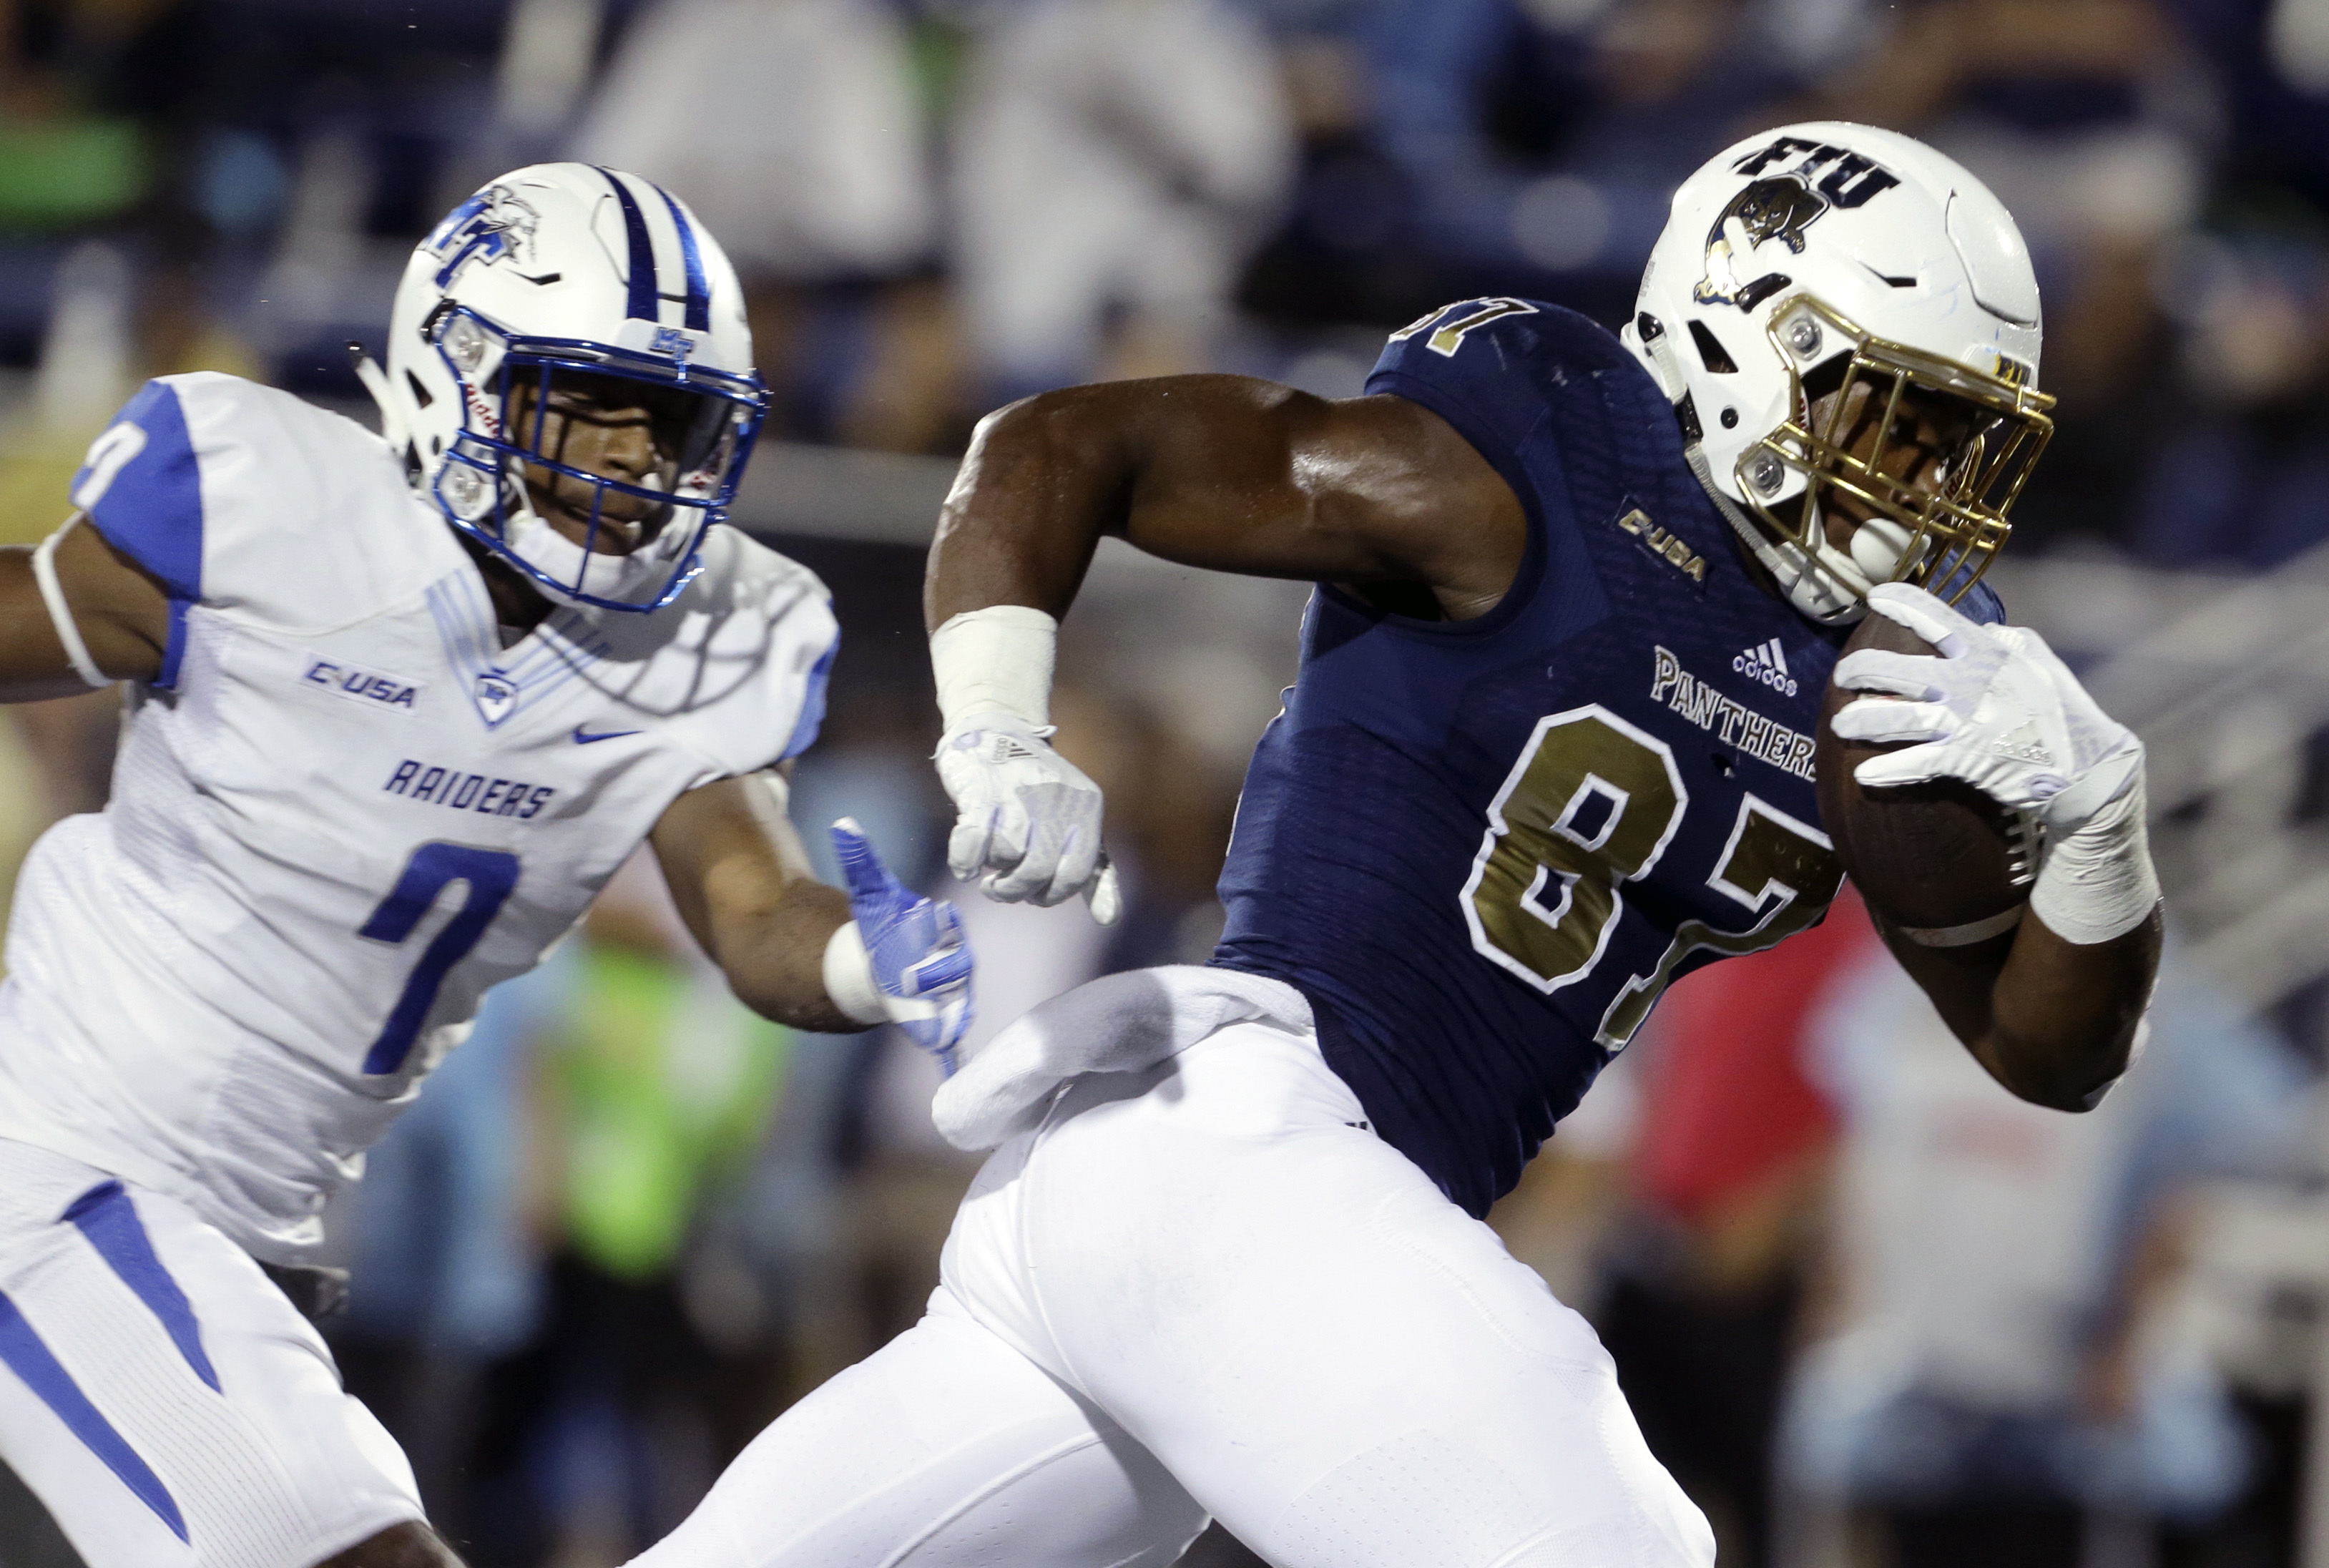 Florida International tight end Jonnu Smith (87) runs to score a touchdown as Middle Tennessee safety Jovante Moffatt (7) defends during the first half of an NCAA college football game, Saturday, Oct. 29, 2016, in Miami. (AP Photo/Lynne Sladky)